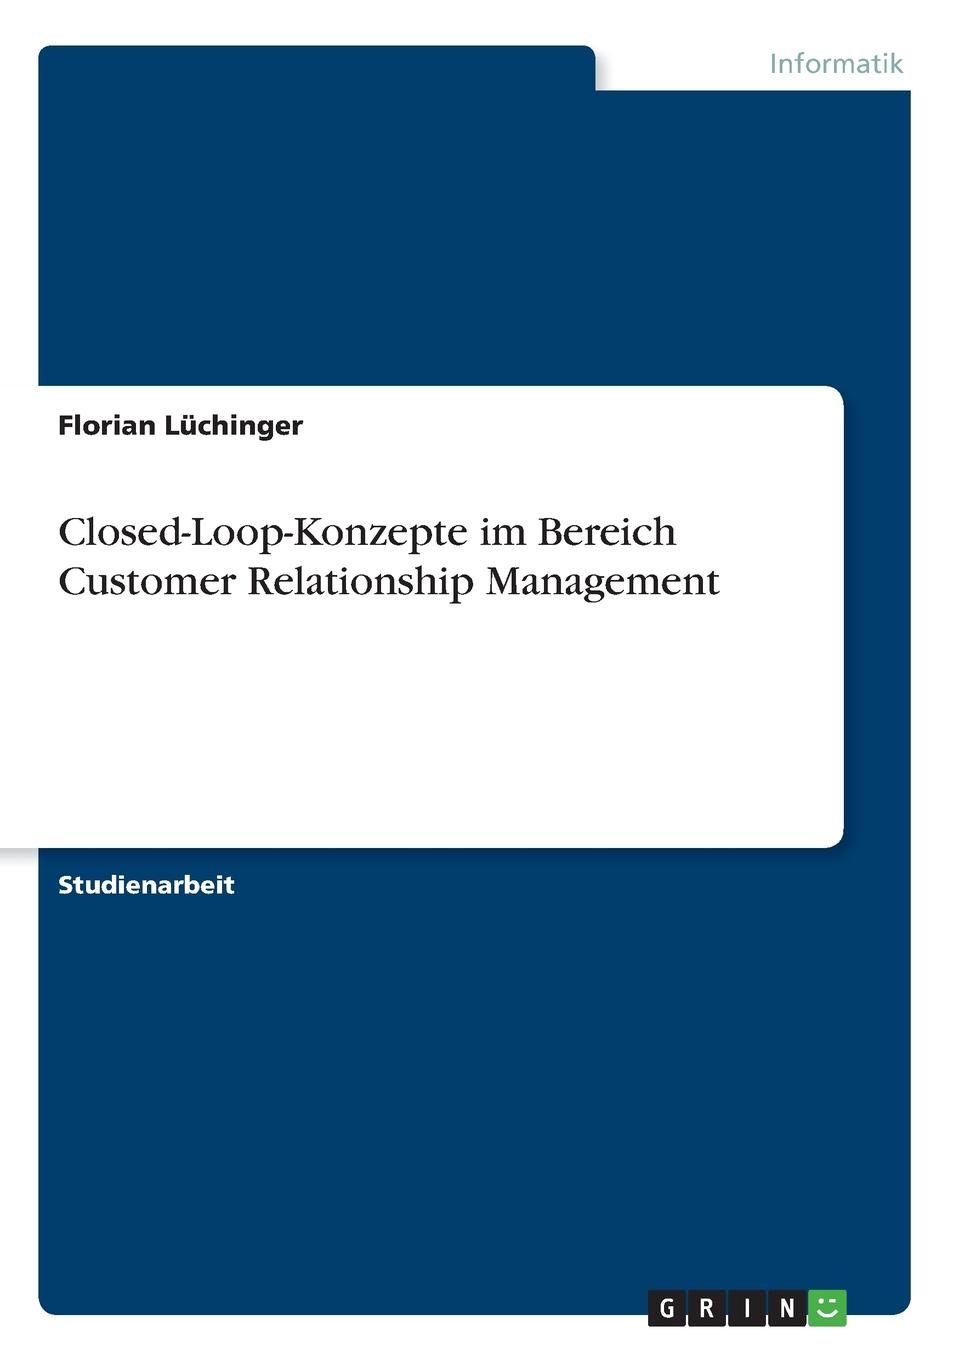 Florian Lüchinger Closed-Loop-Konzepte im Bereich Customer Relationship Management aga kamilla it fur kunden qualitatsmanagement bei customer relationship management